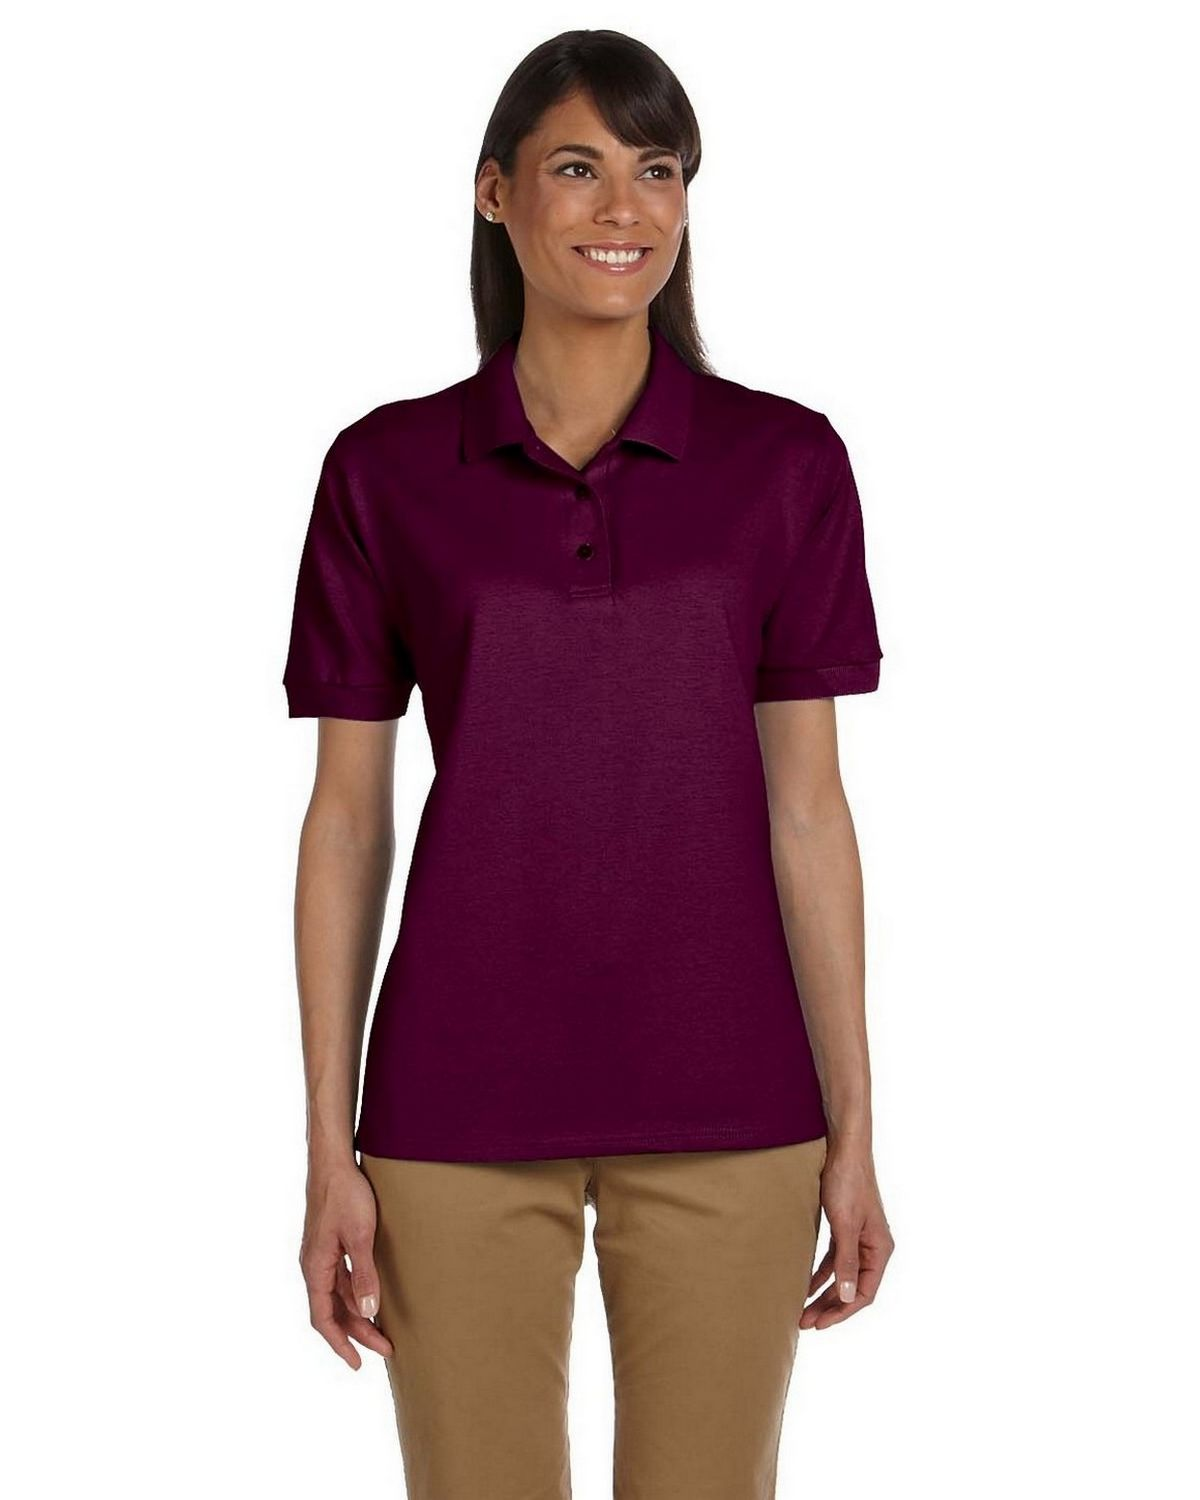 be54498c6 Buy Gildan G380L Ladies Ultra Cotton Ringspun Pique Polo